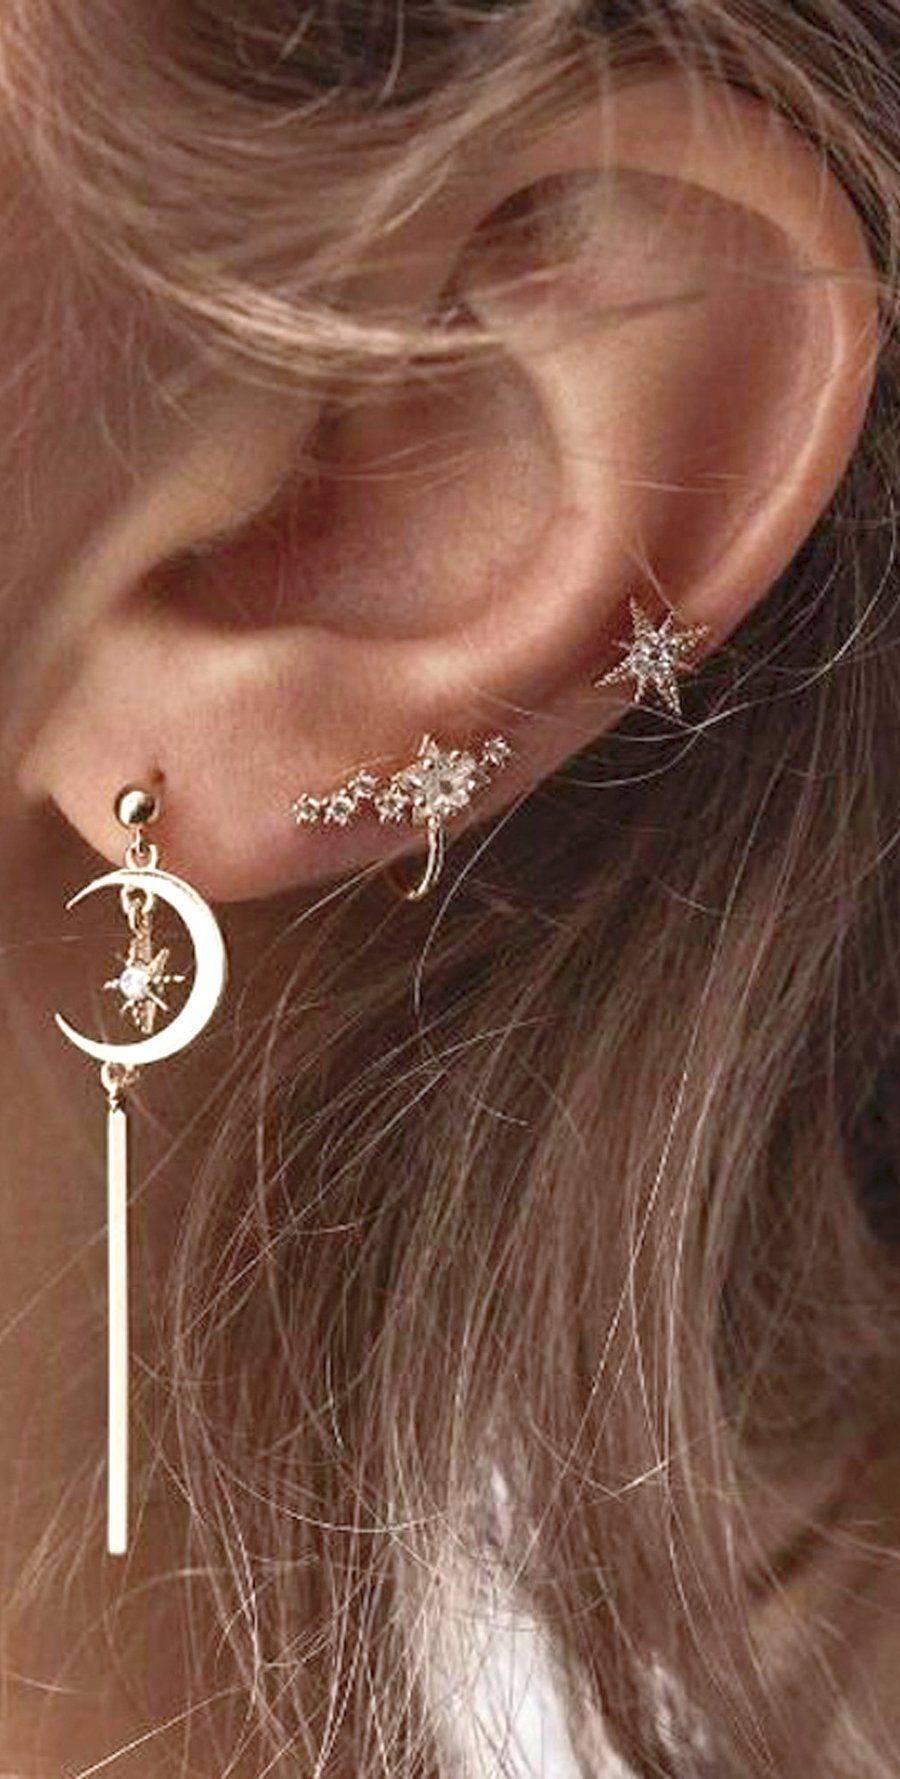 e556d5fef16d3 Product Information Earring Set: 3 Pieces Color: Gold Gauge Size ...